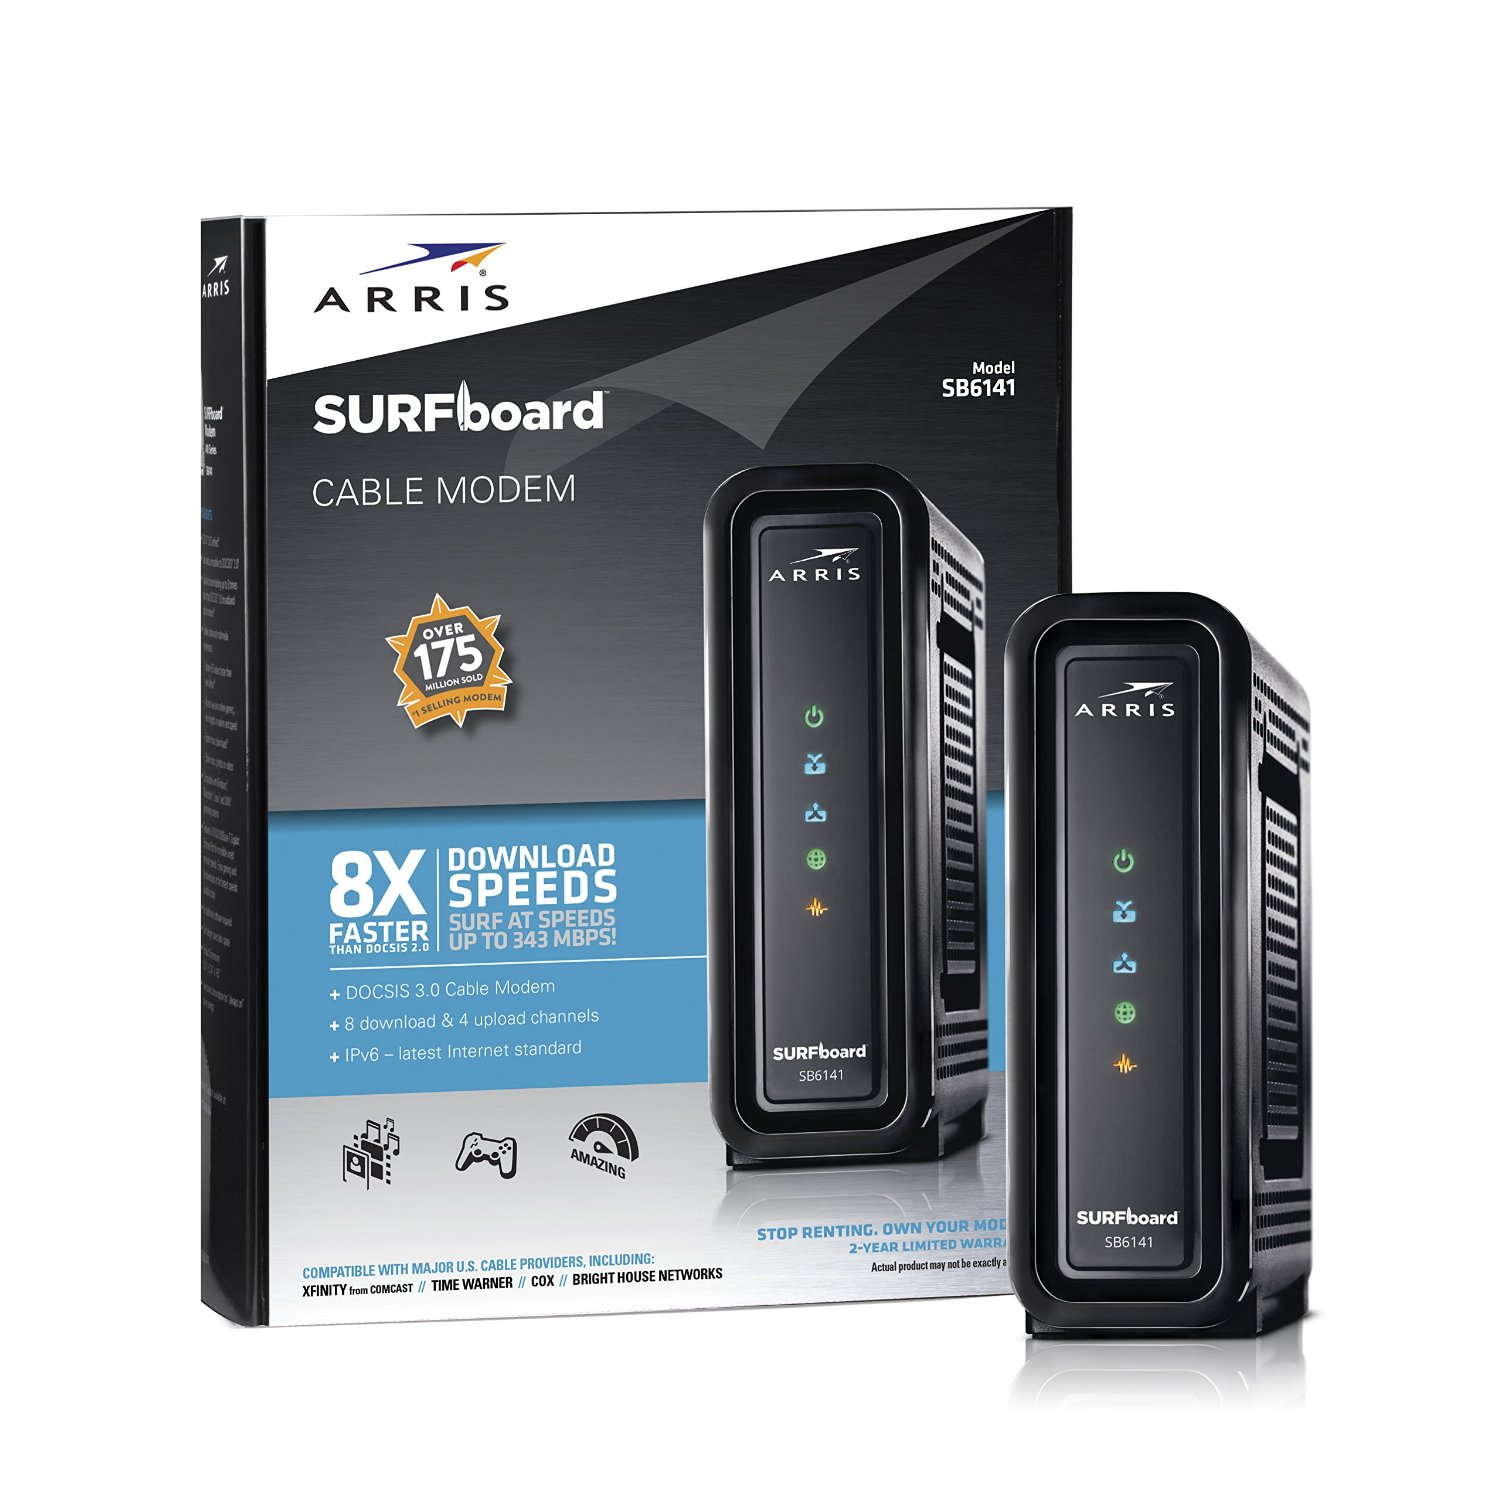 Arris SURFboard DOCSIS 3.0 eXtreme Cable Modem with Channel Bonding and Download Speed up to 343 Mbps - Available in Black or White